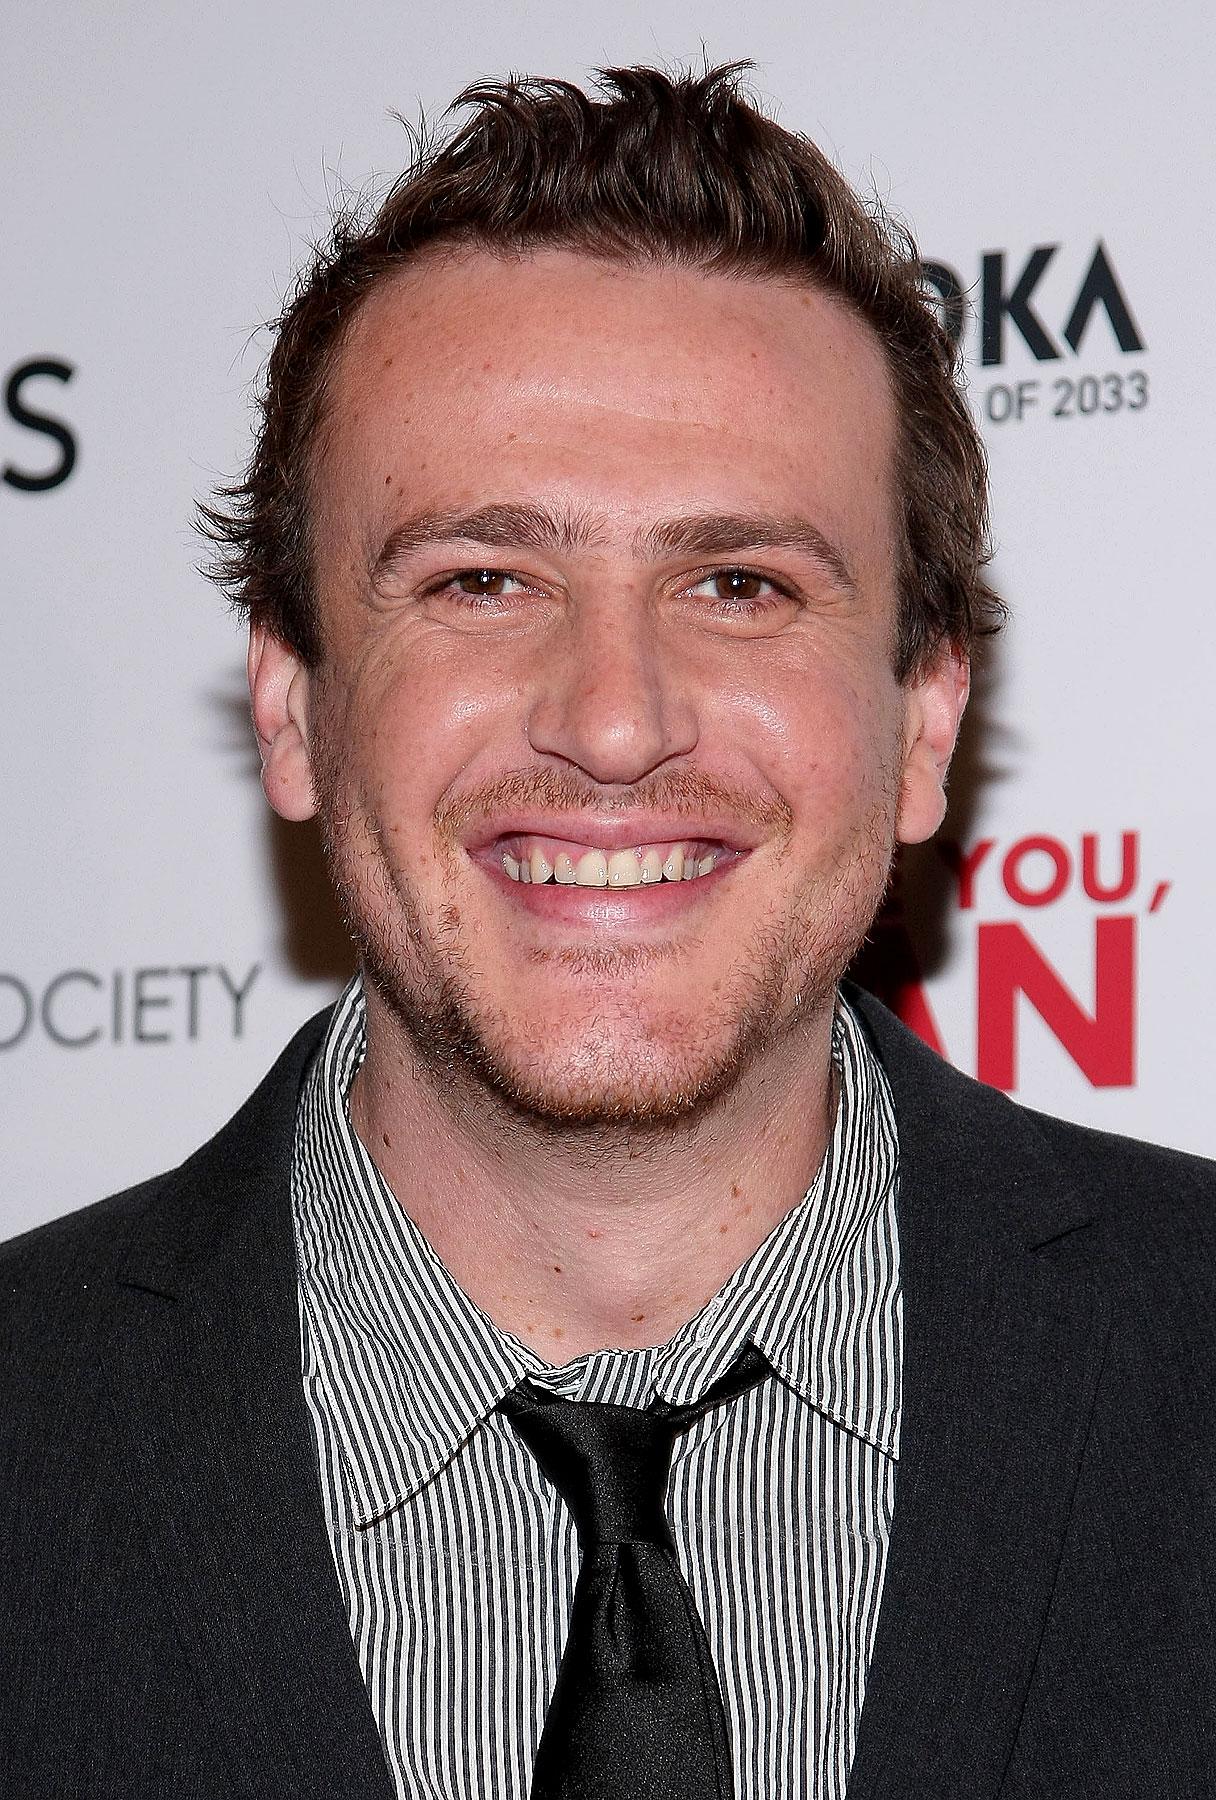 Jason Segel: Will Kiss Dudes for Laughs